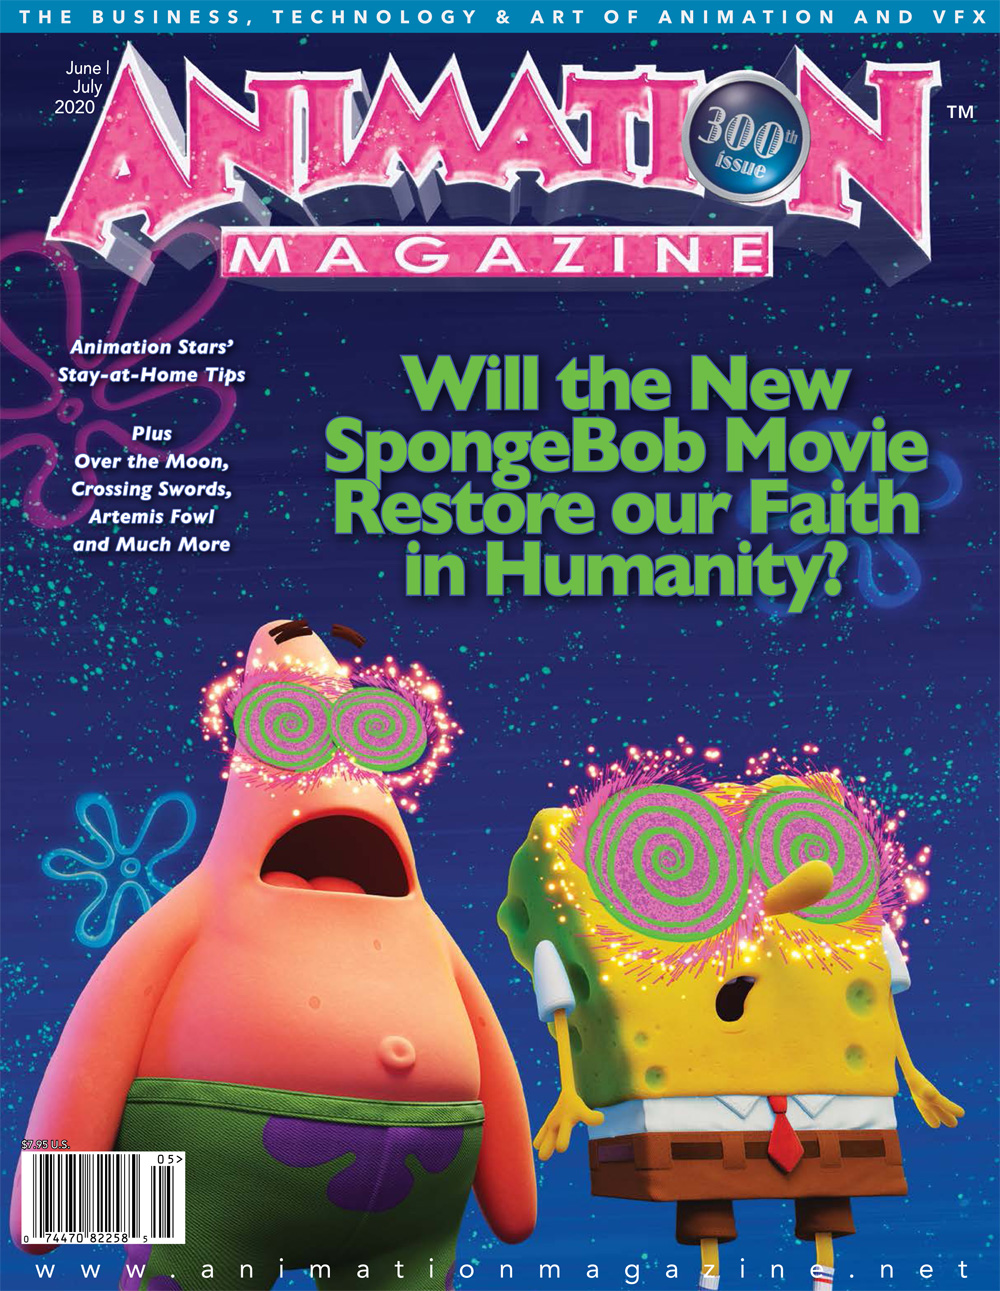 Animation Magazine – #301 June/July 2020